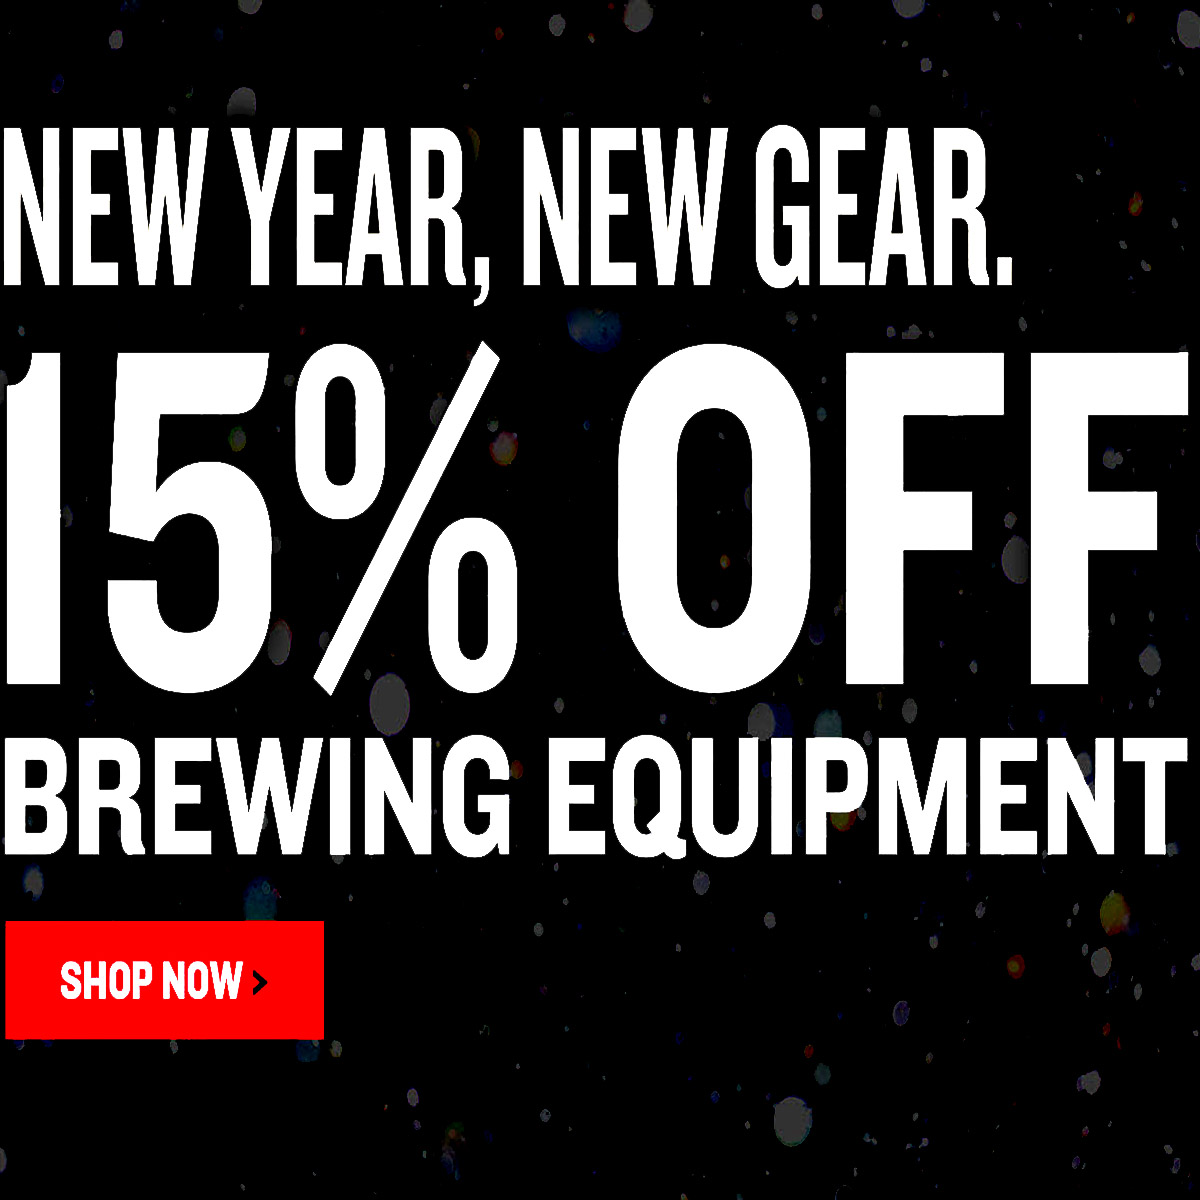 Northern Brewer Save 15% On Home Beer Brewing Equipment at NorthernBrewer.com With Promo Code Coupon Code